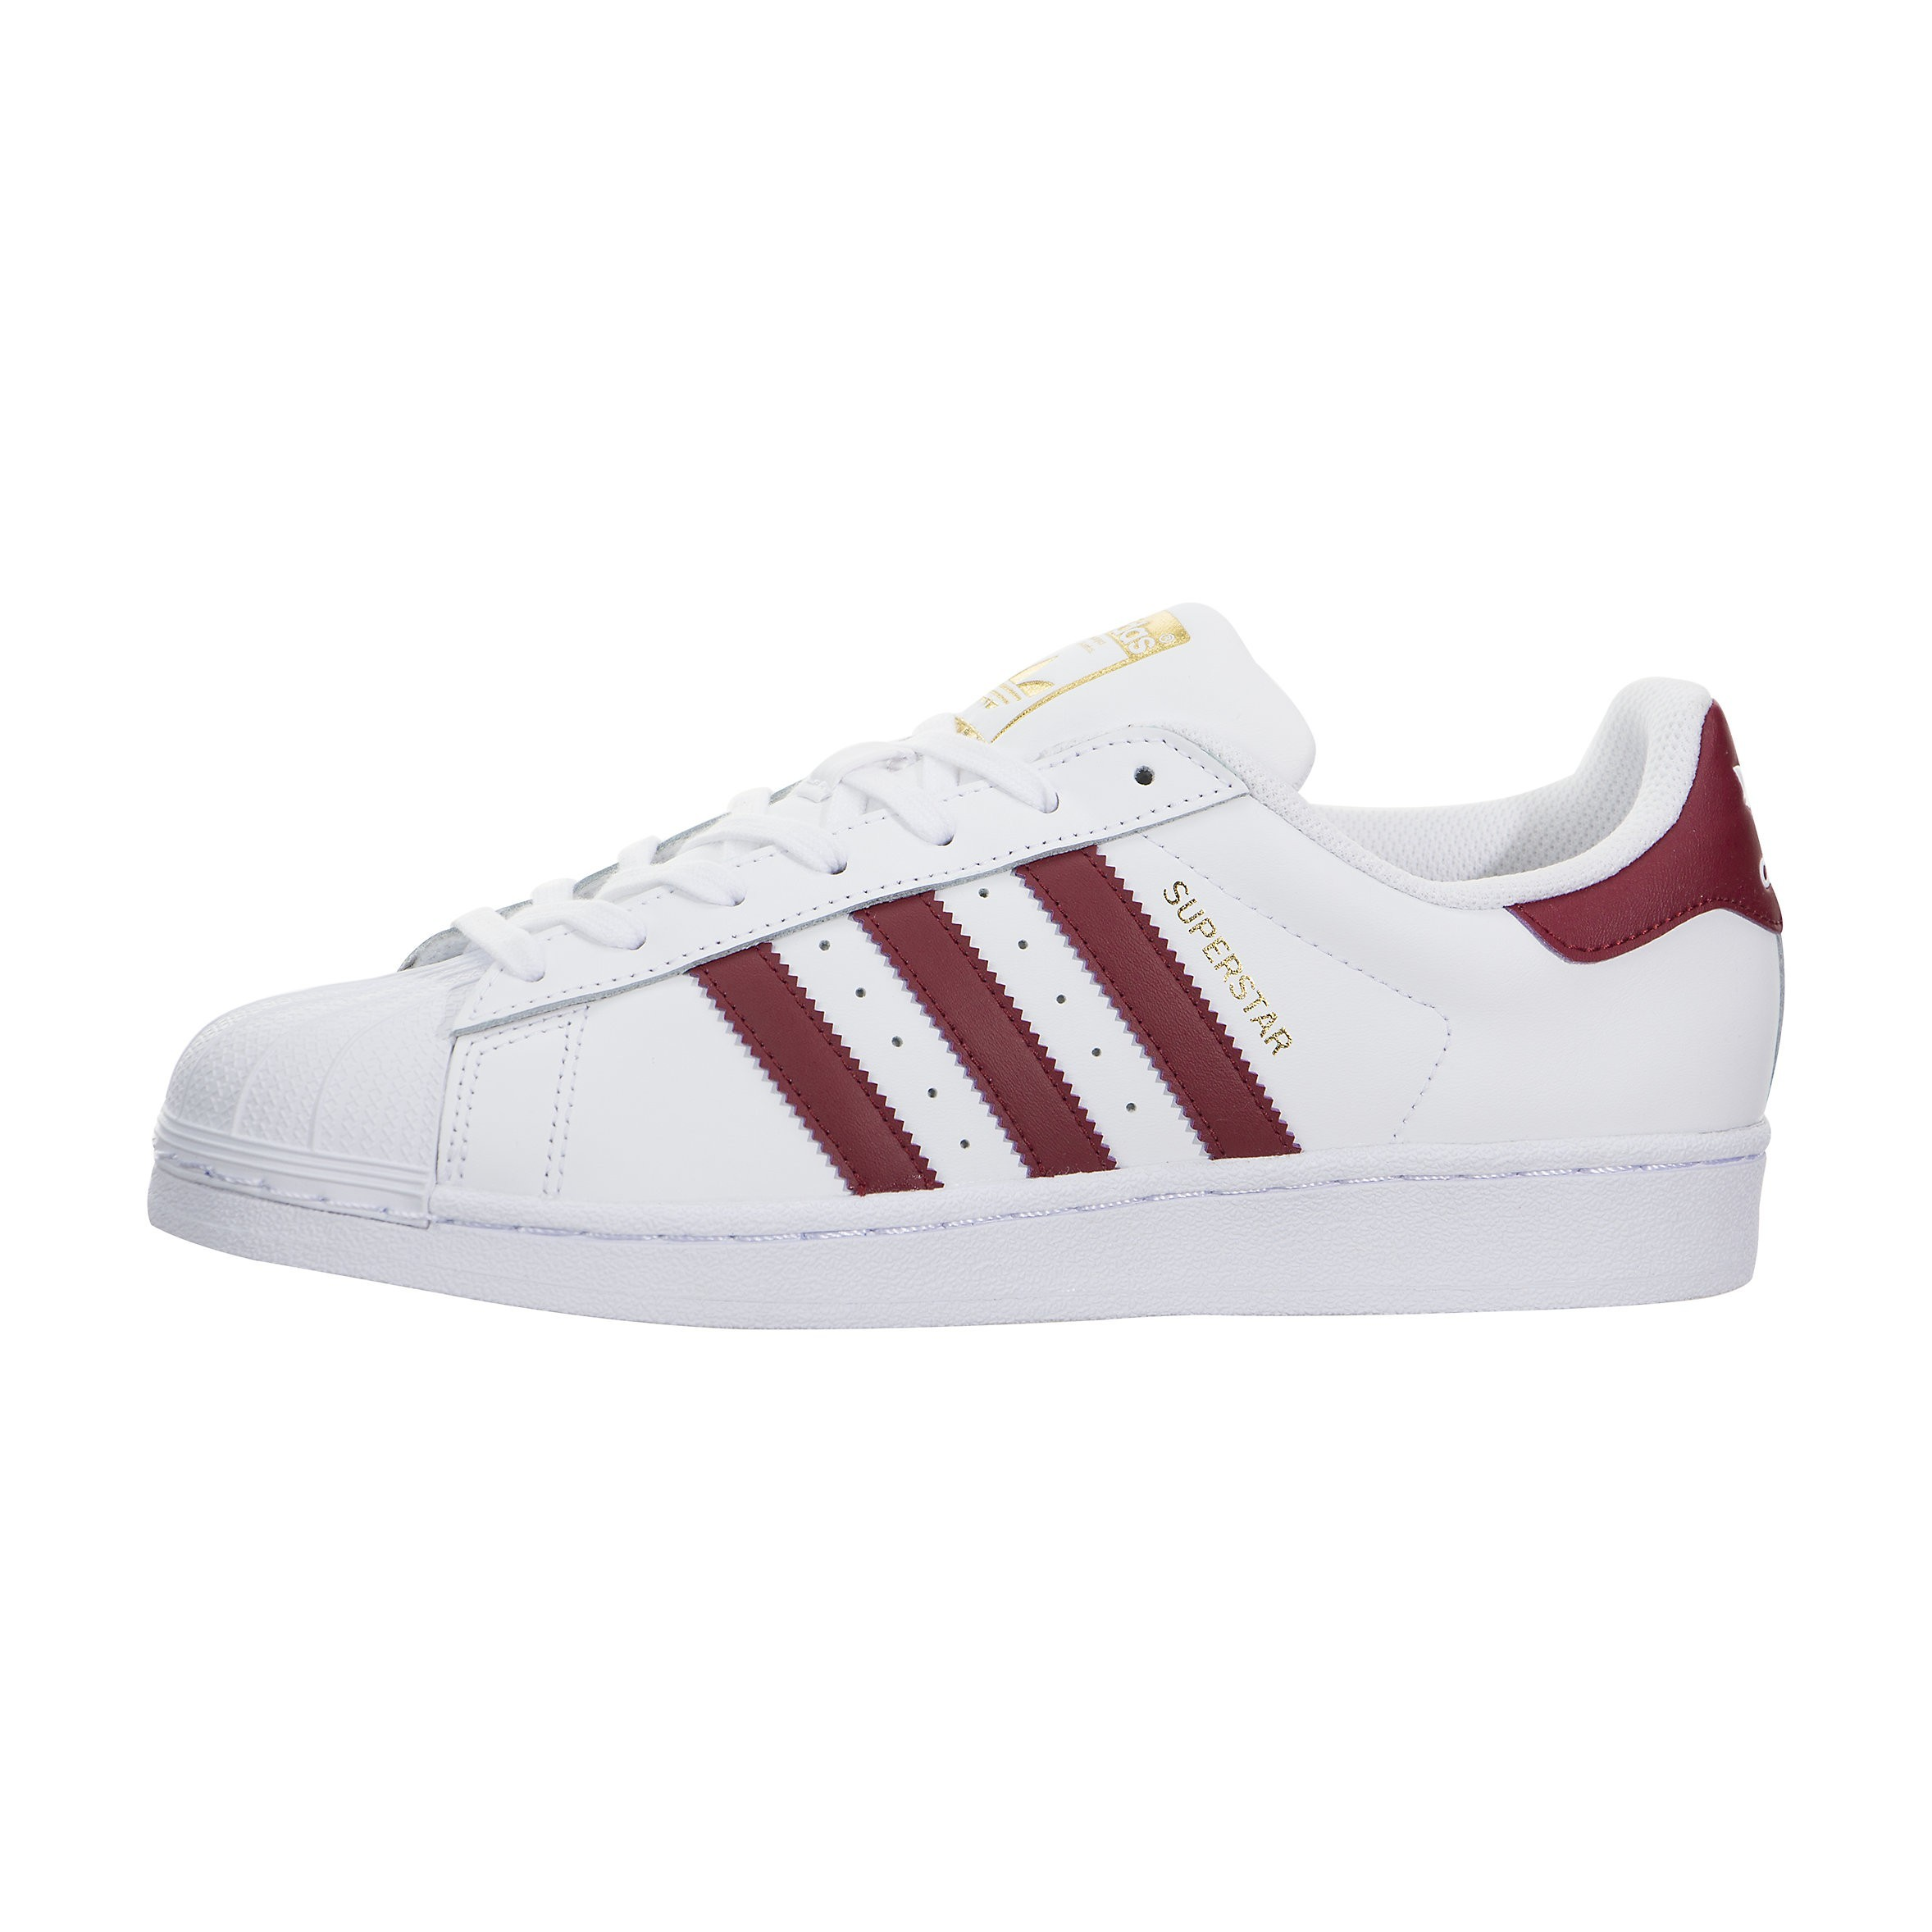 Hombre adidas Superstar Foundation Zapatilla Blancas By3713